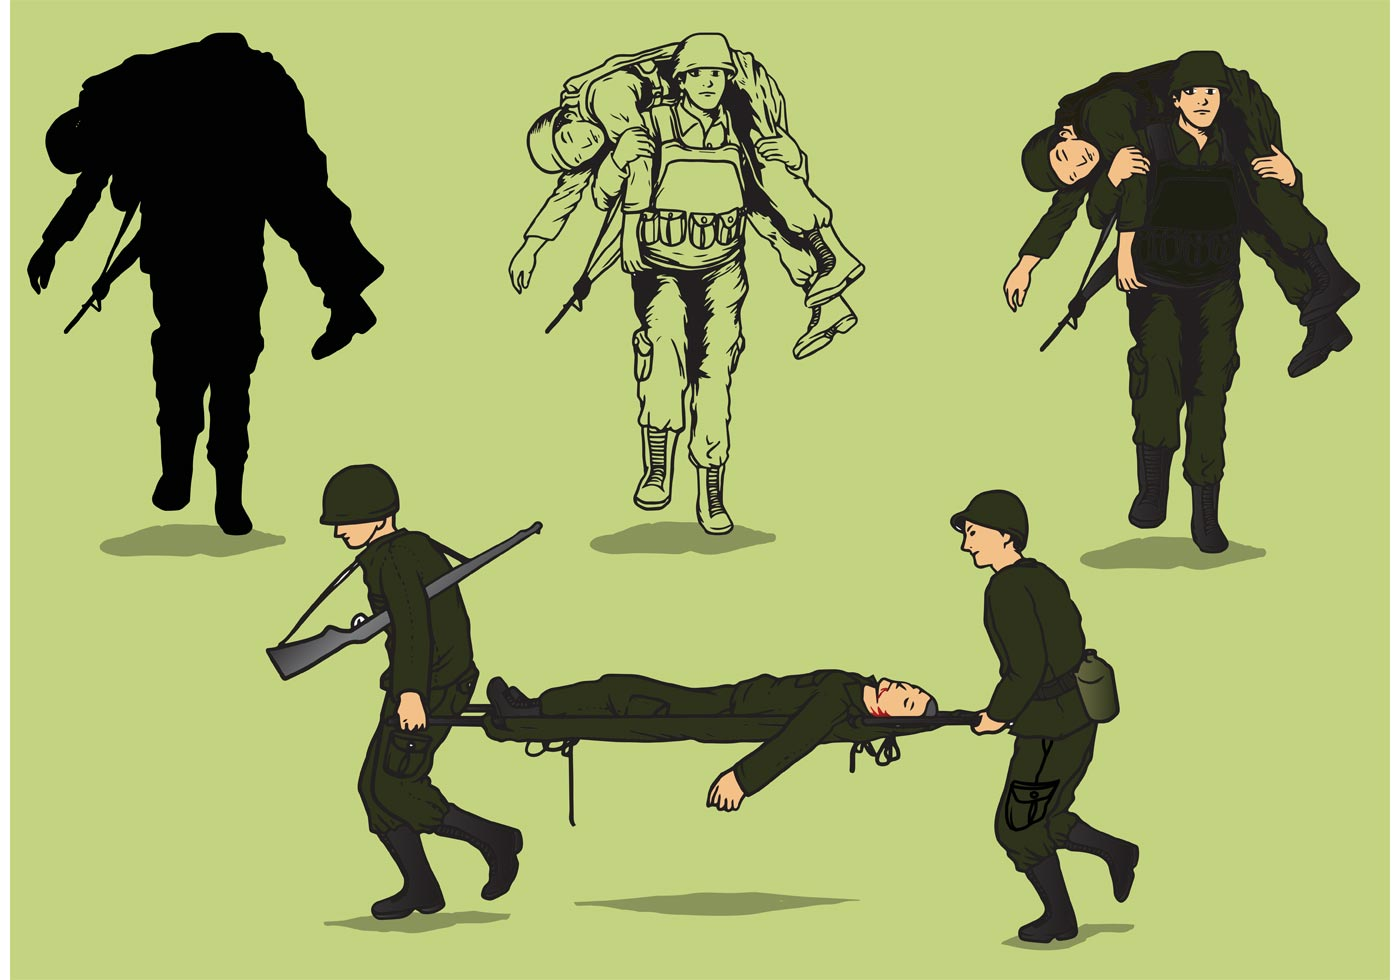 Wounded soldier clipart 20 free Cliparts | Download images on